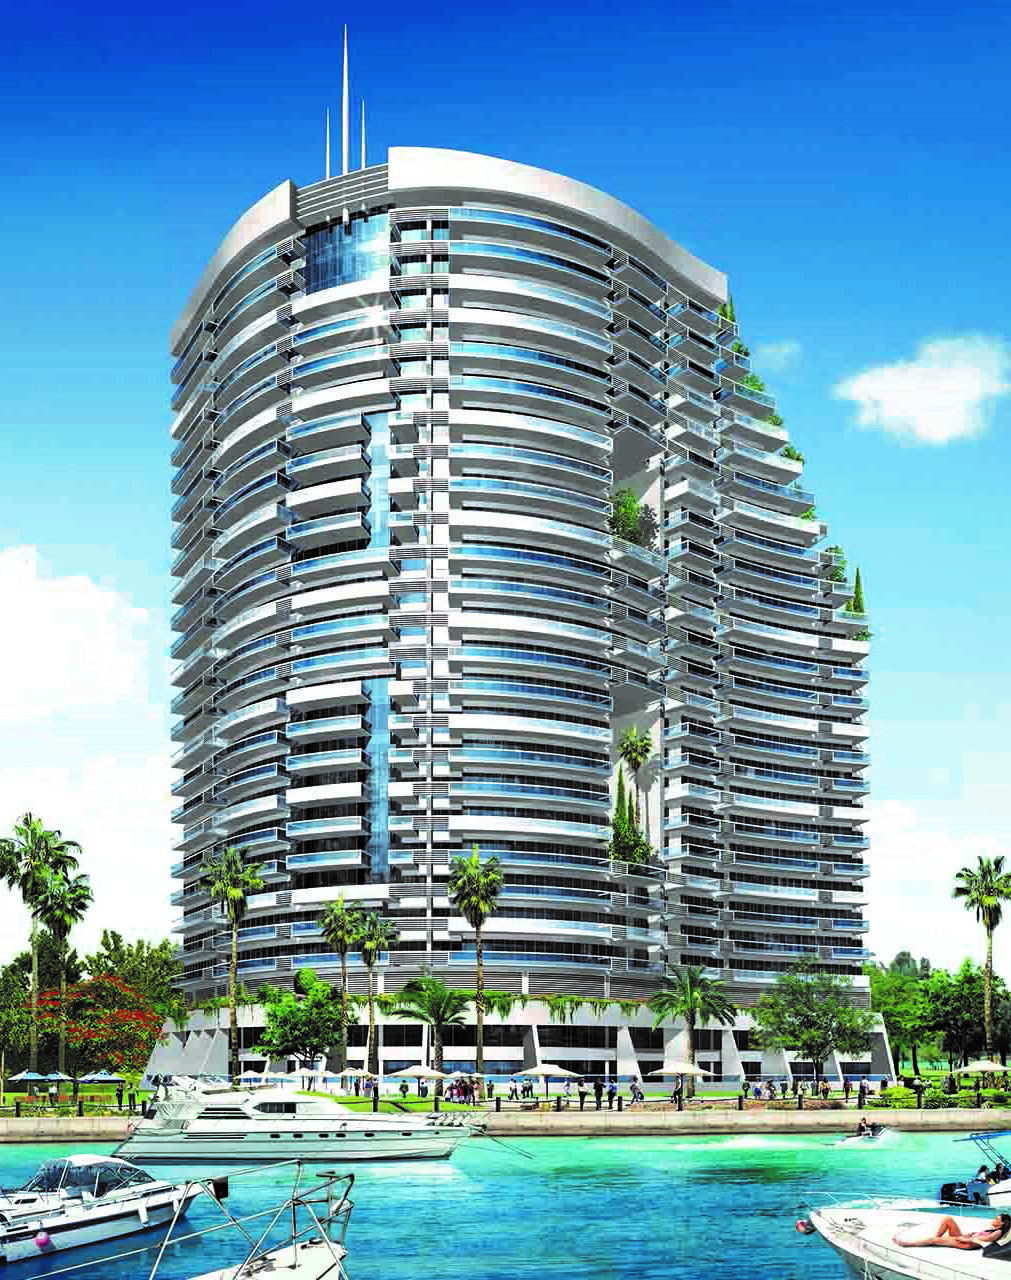 Geha Engineering- Sorouh Tower II